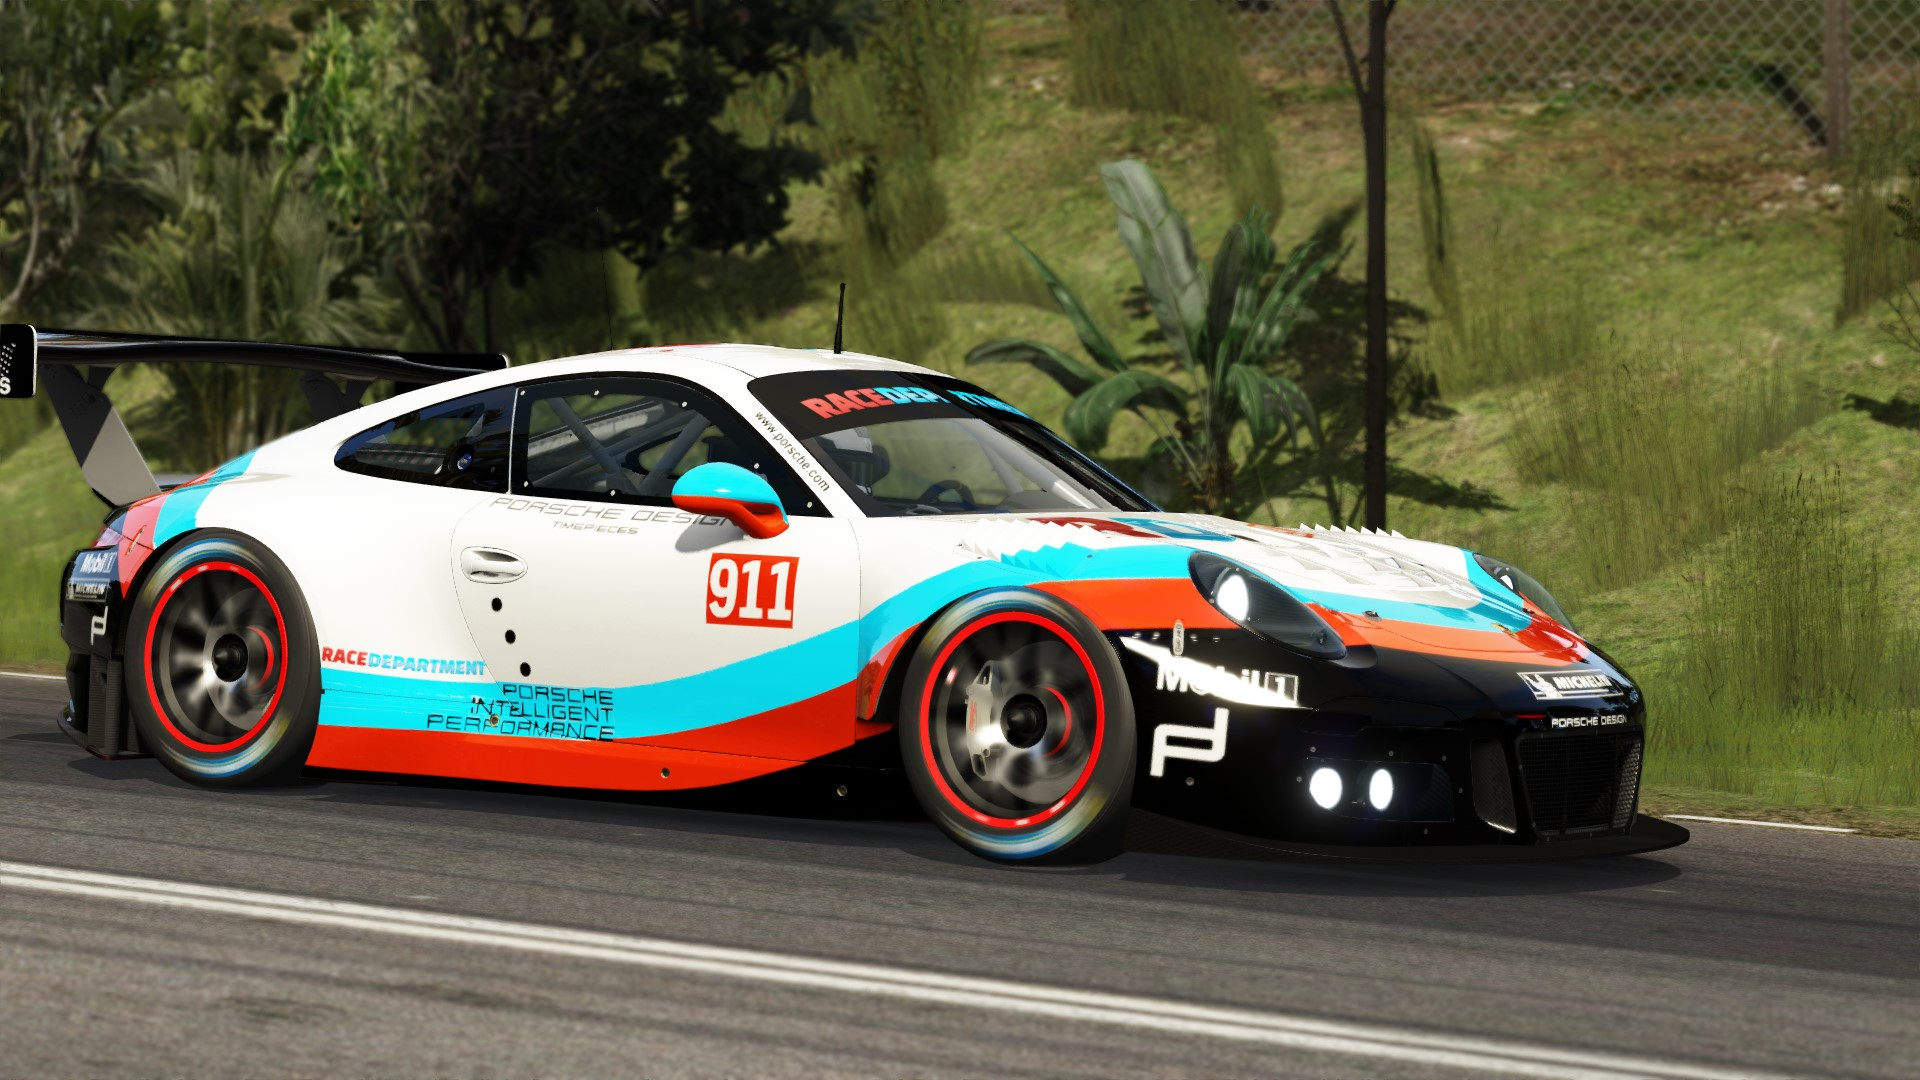 Screenshot_ks_porsche_911_gt3_r_2016_thomson_6-2-117-12-1-36.jpg